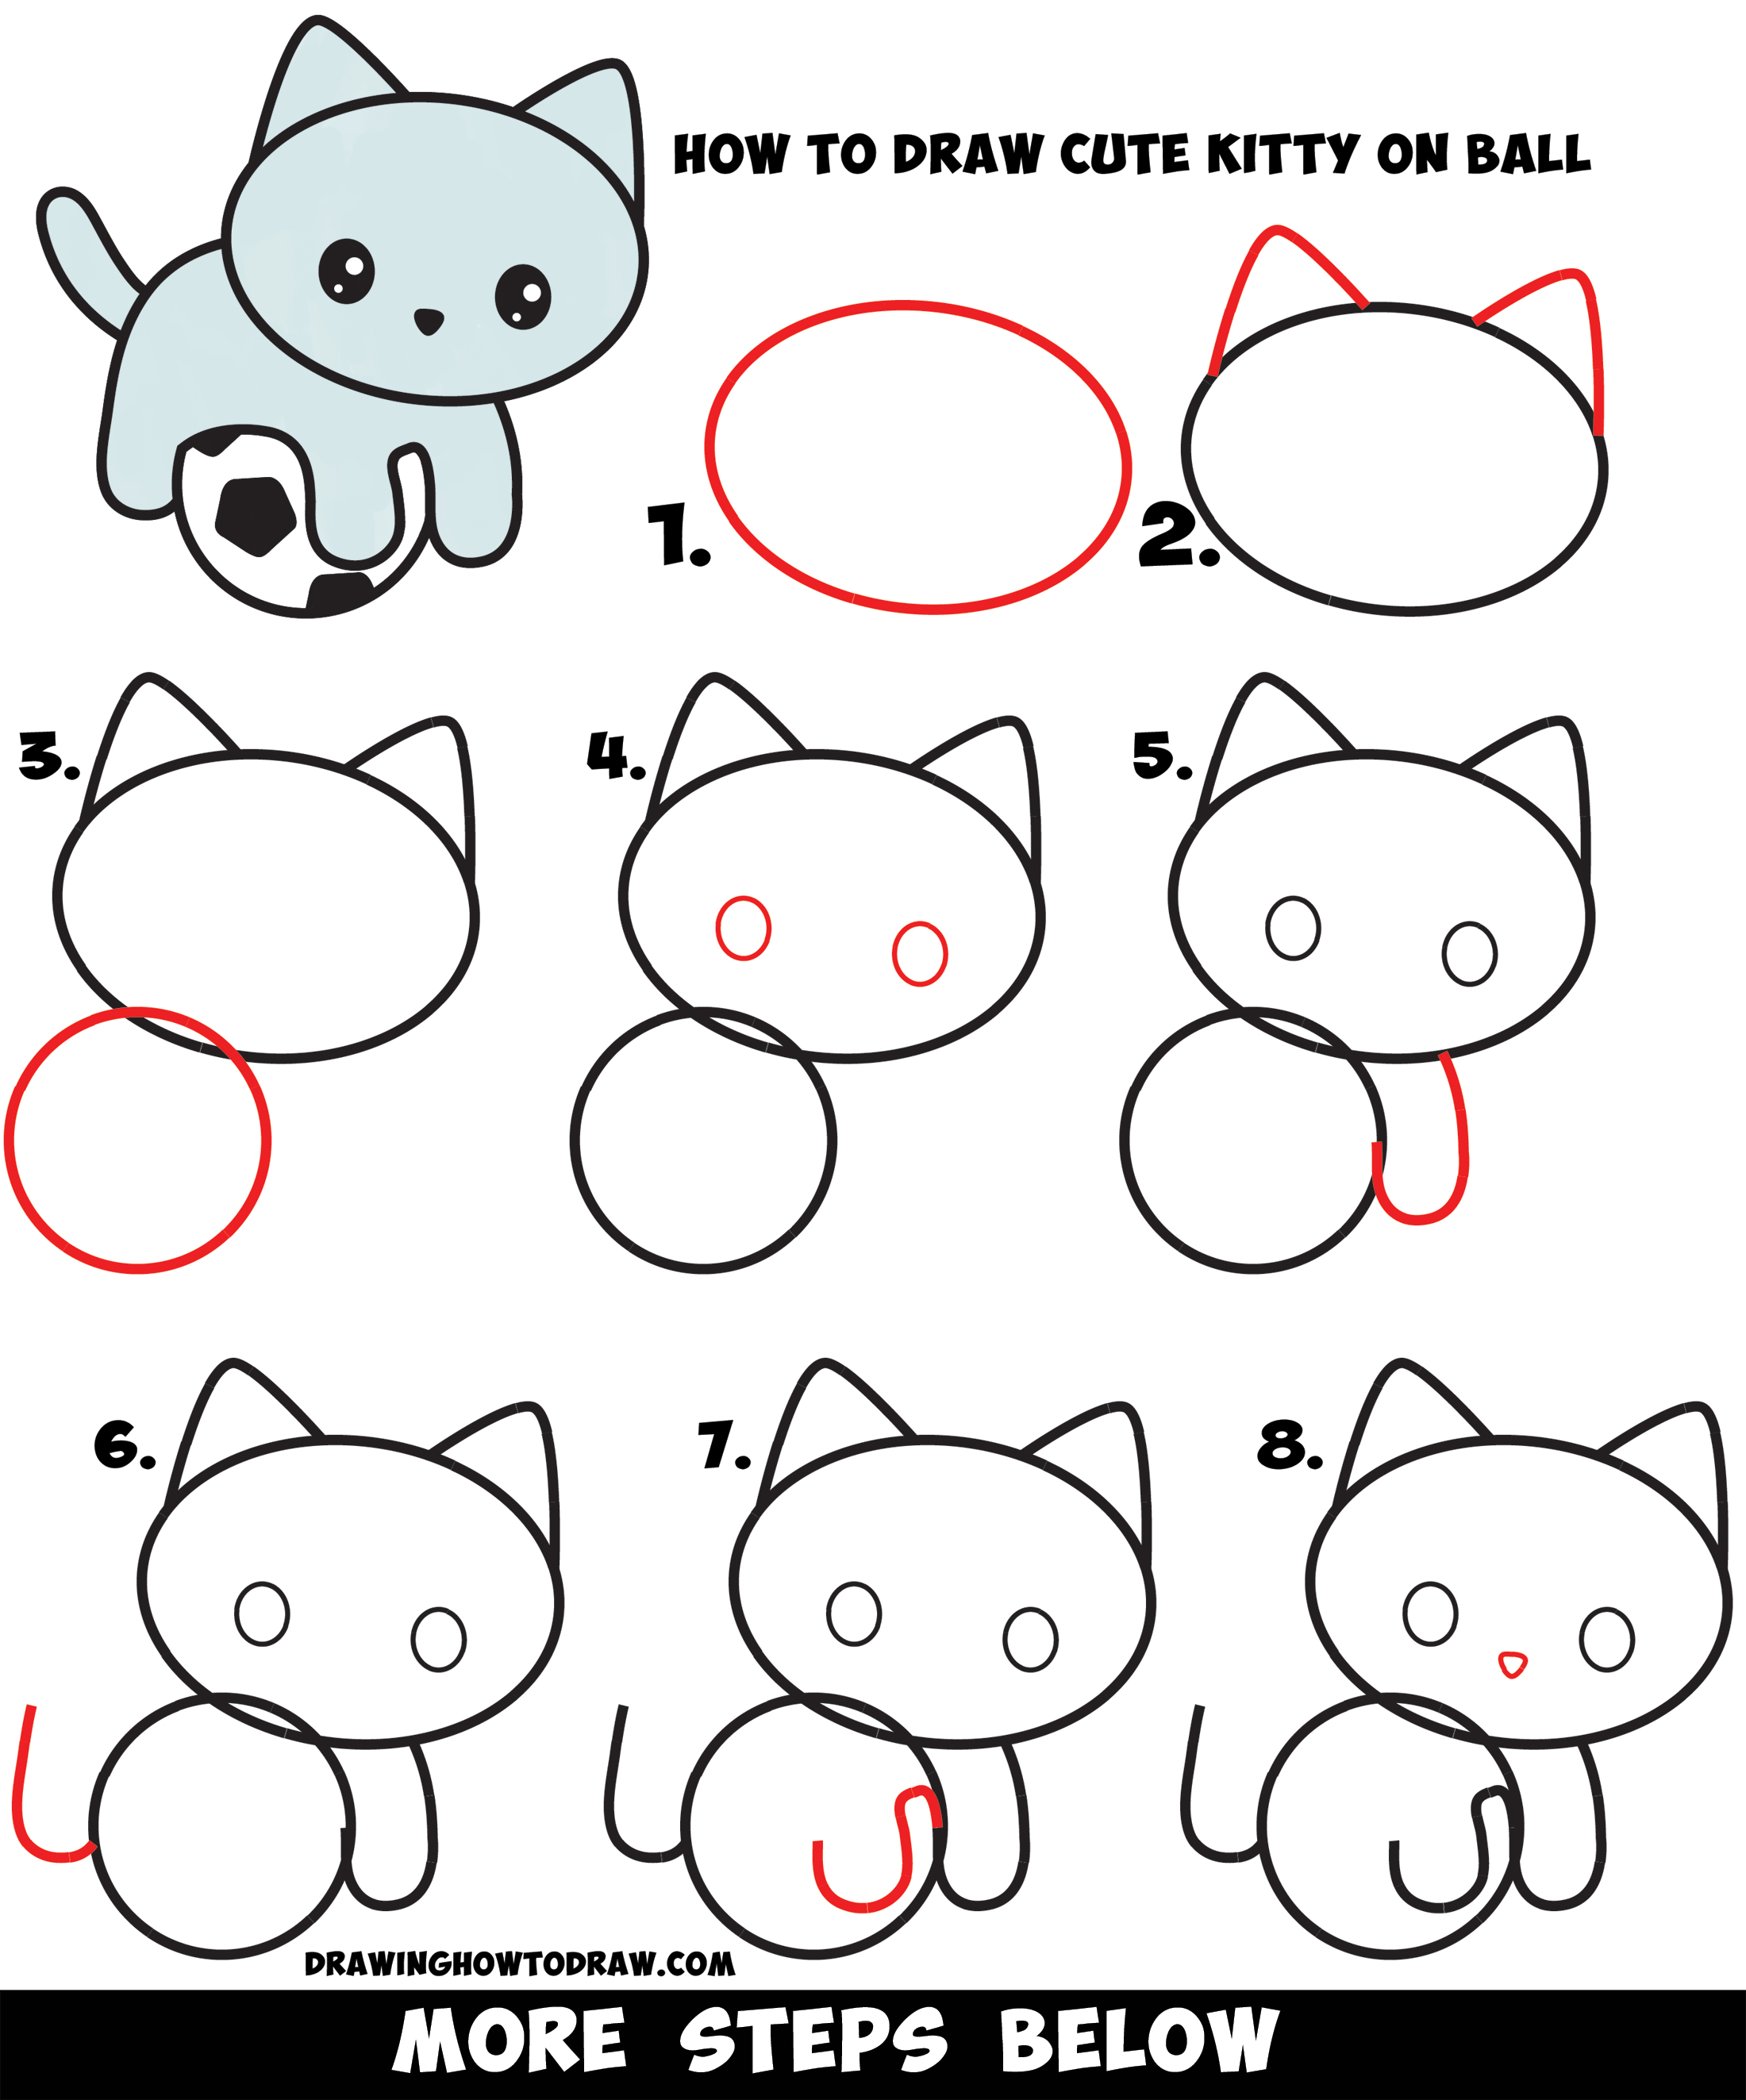 How To Draw A Cute Kitten Playing On A Soccer Ball Easy Step By Step Drawing Tutorial For Kids How To Draw Step By Step Drawing Tutorials